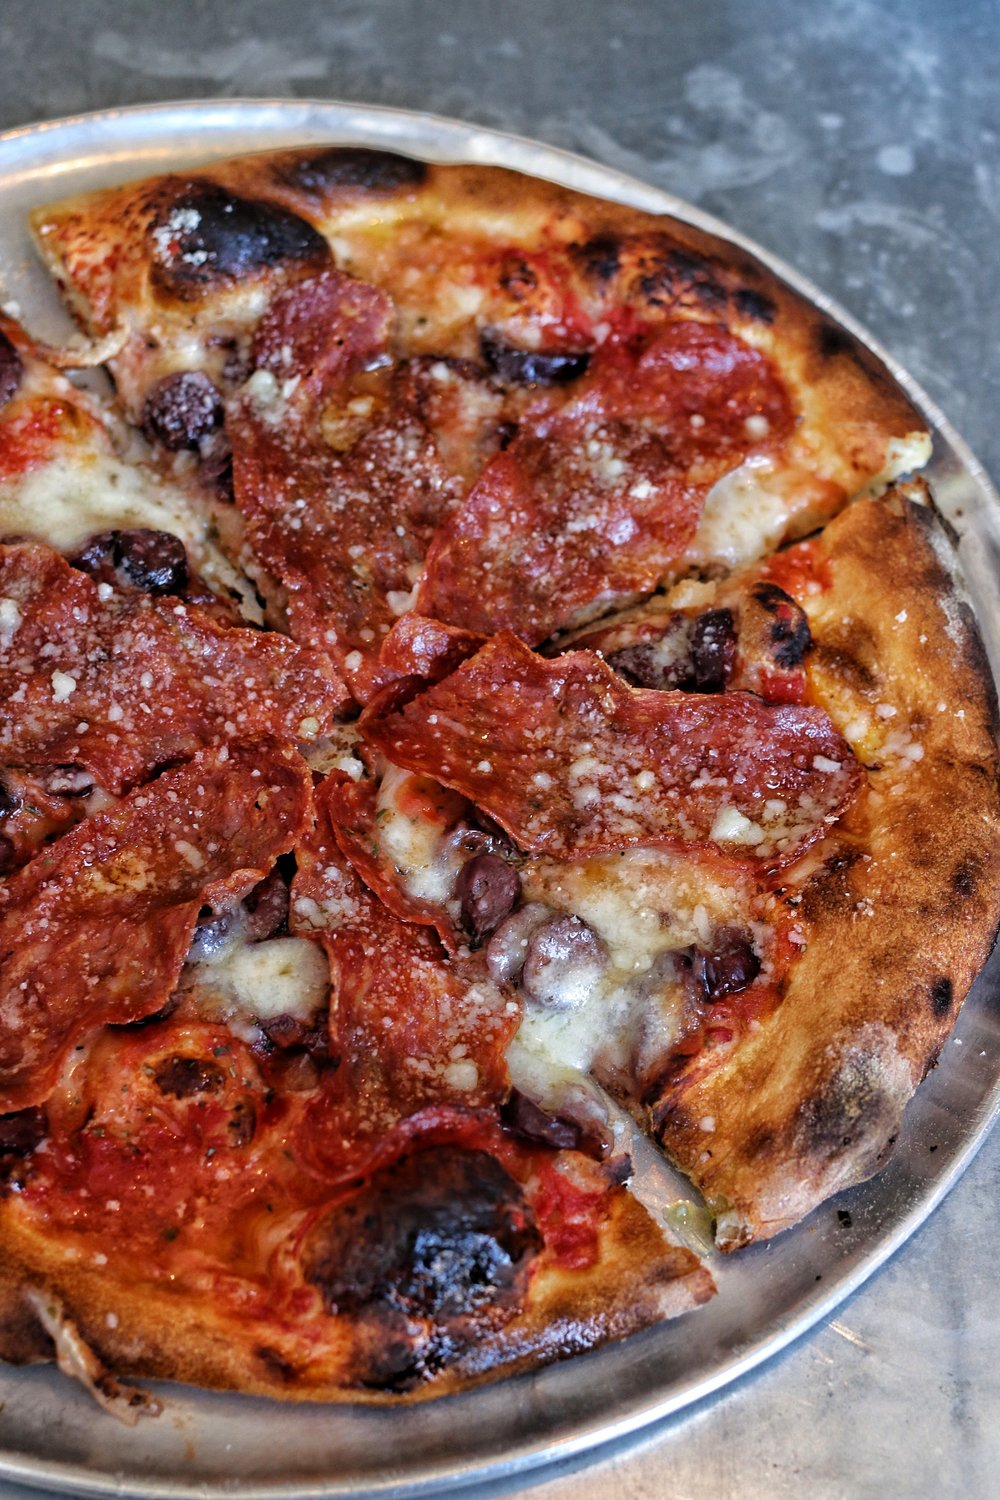 pizza- tomato, spicy salami, olives, bualo mozzarella